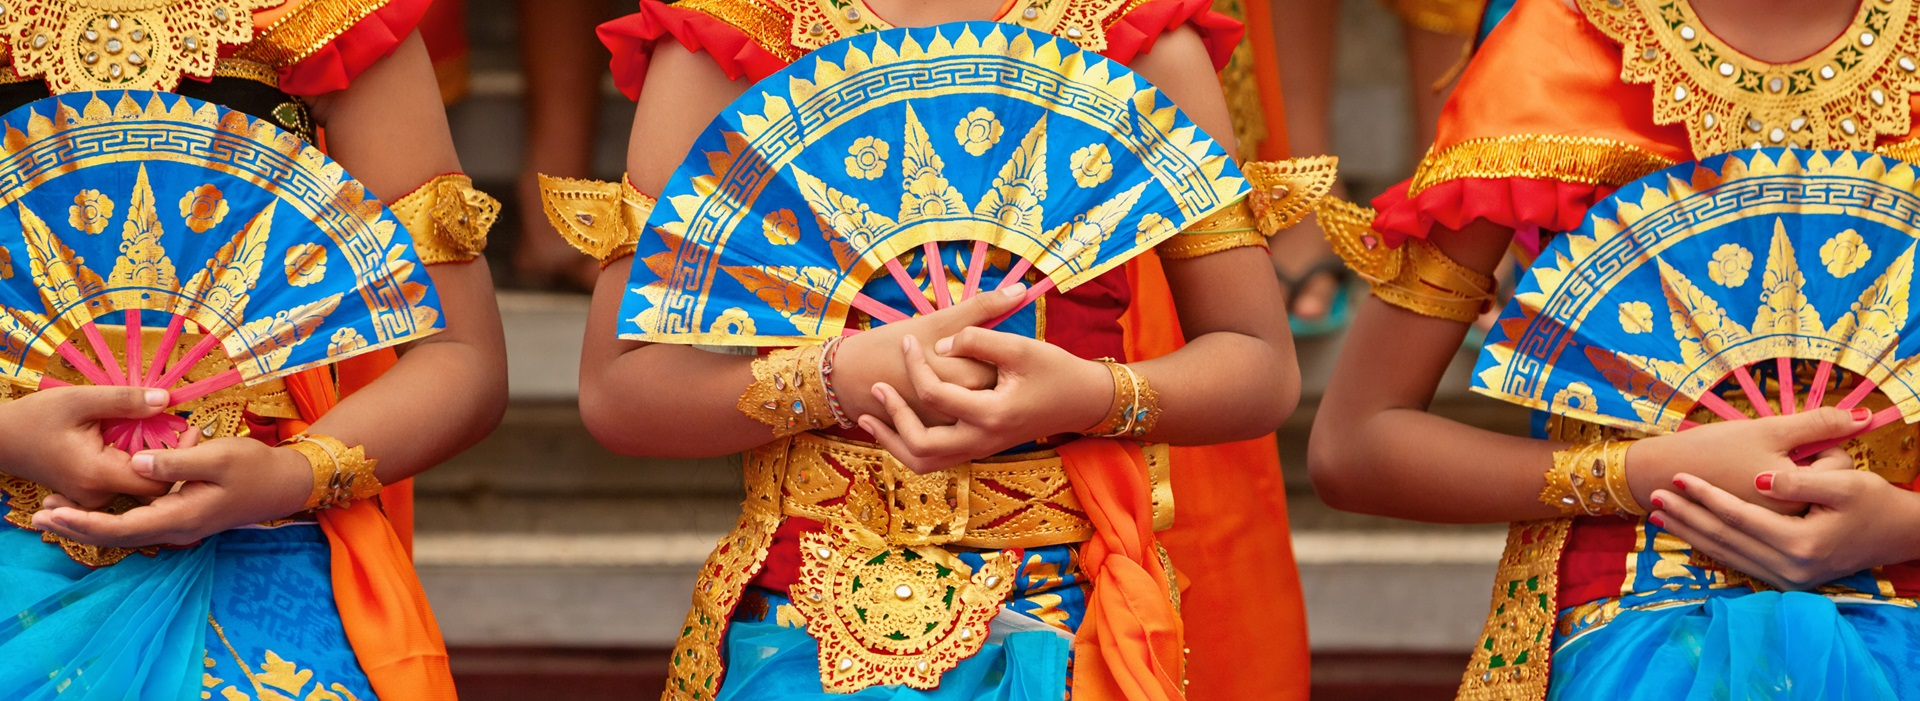 The culture of Bali